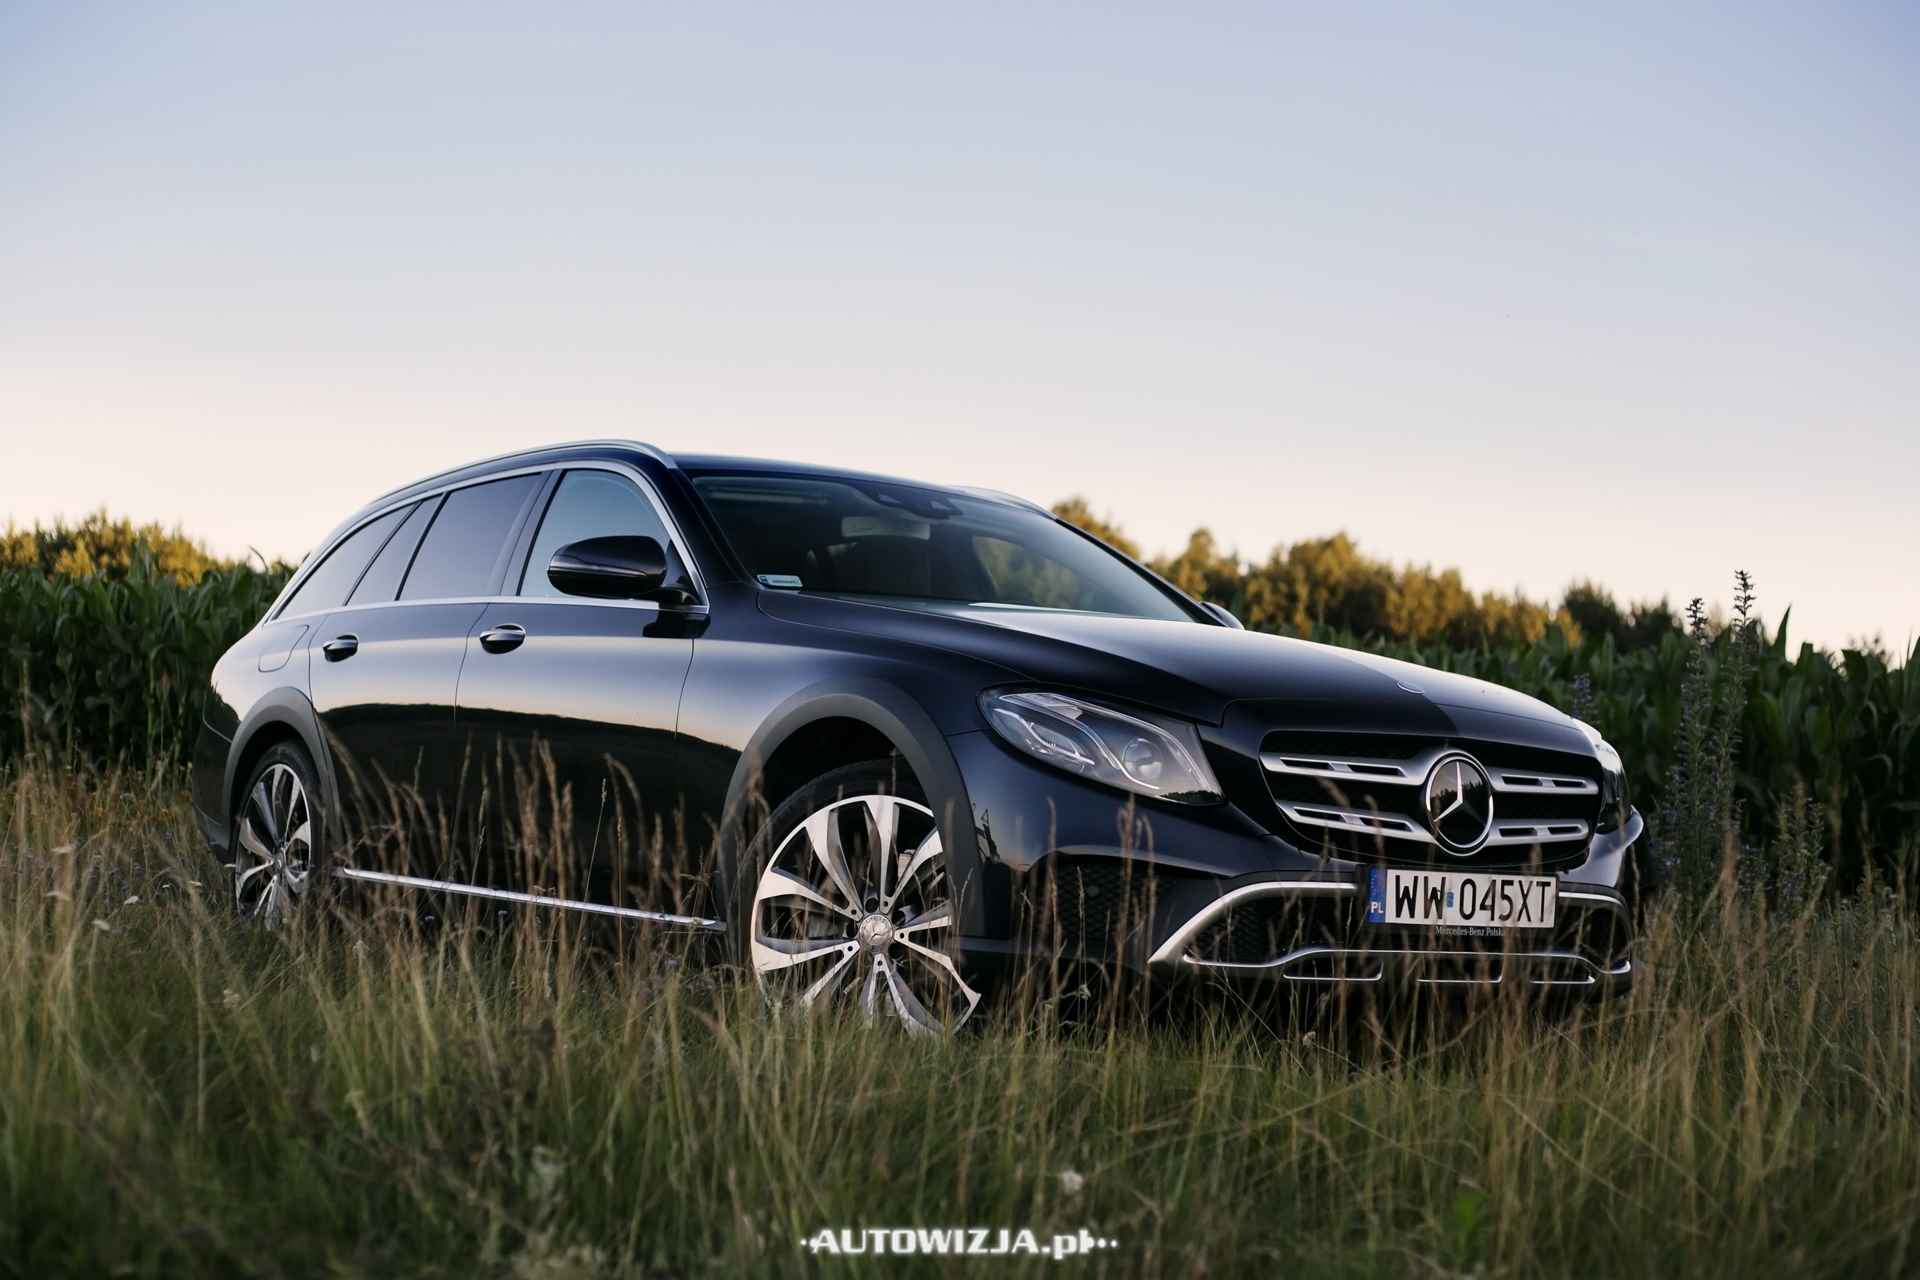 mercedes e 220 d all terrain auto test motoryzacja. Black Bedroom Furniture Sets. Home Design Ideas